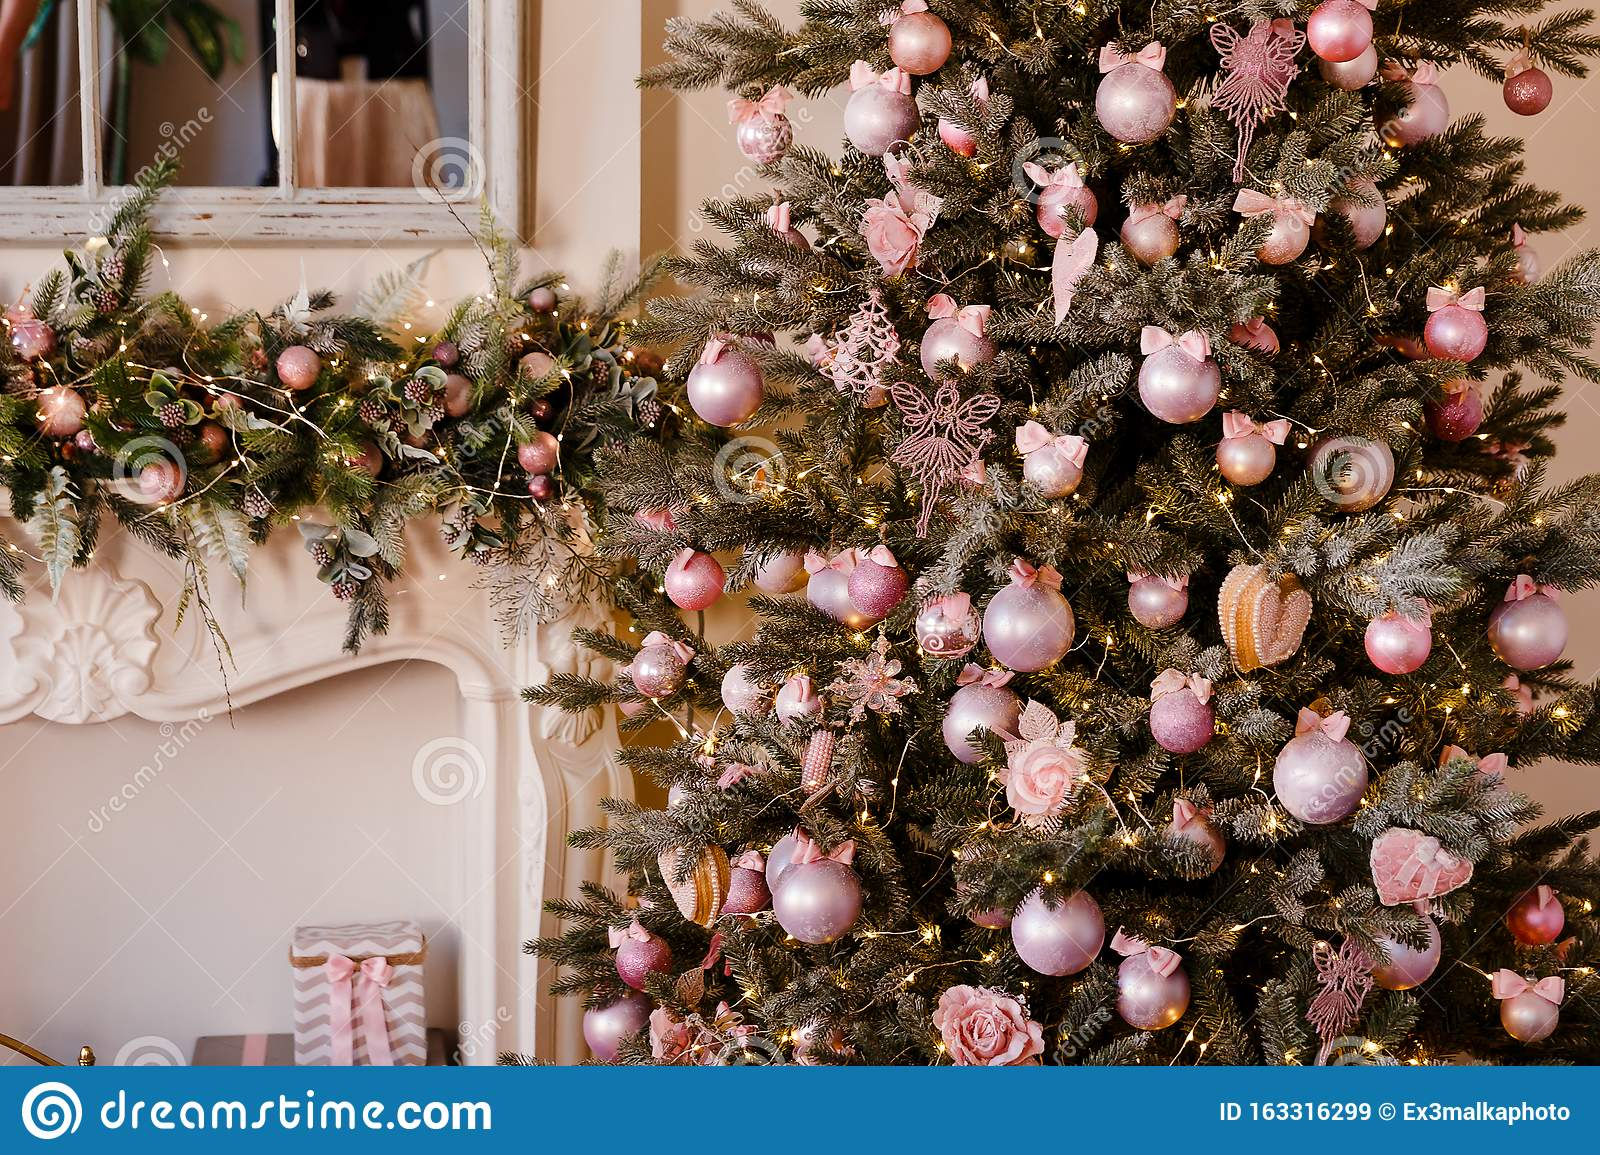 Elegant Christmas Tree Decorated With Pink Pearl Balls Stock Image Image Of Background Festive 163316299